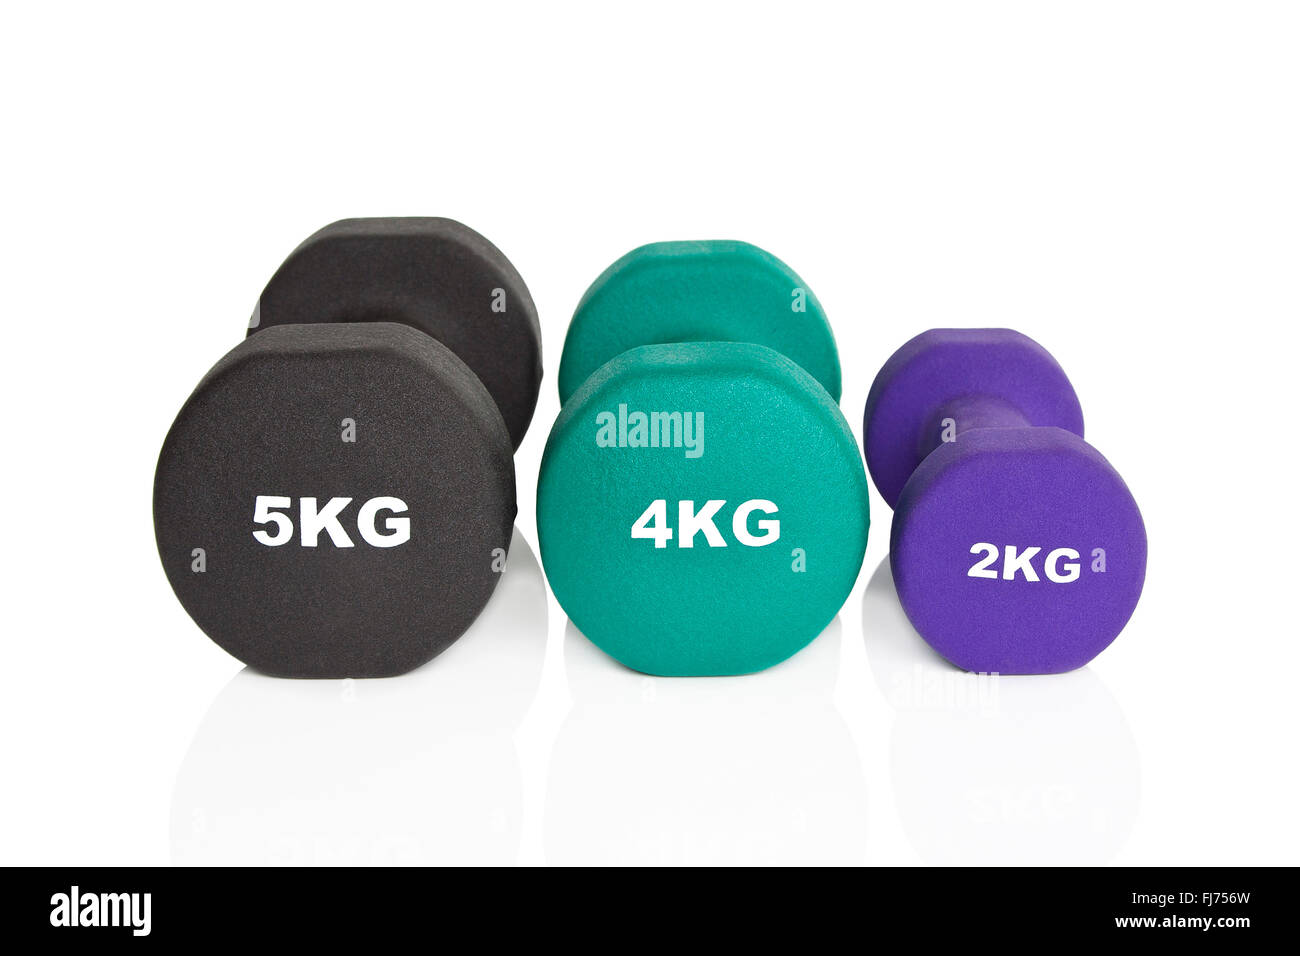 Black, green and purple dumbbells isolated on white background. Weights for a fitness training. - Stock Image